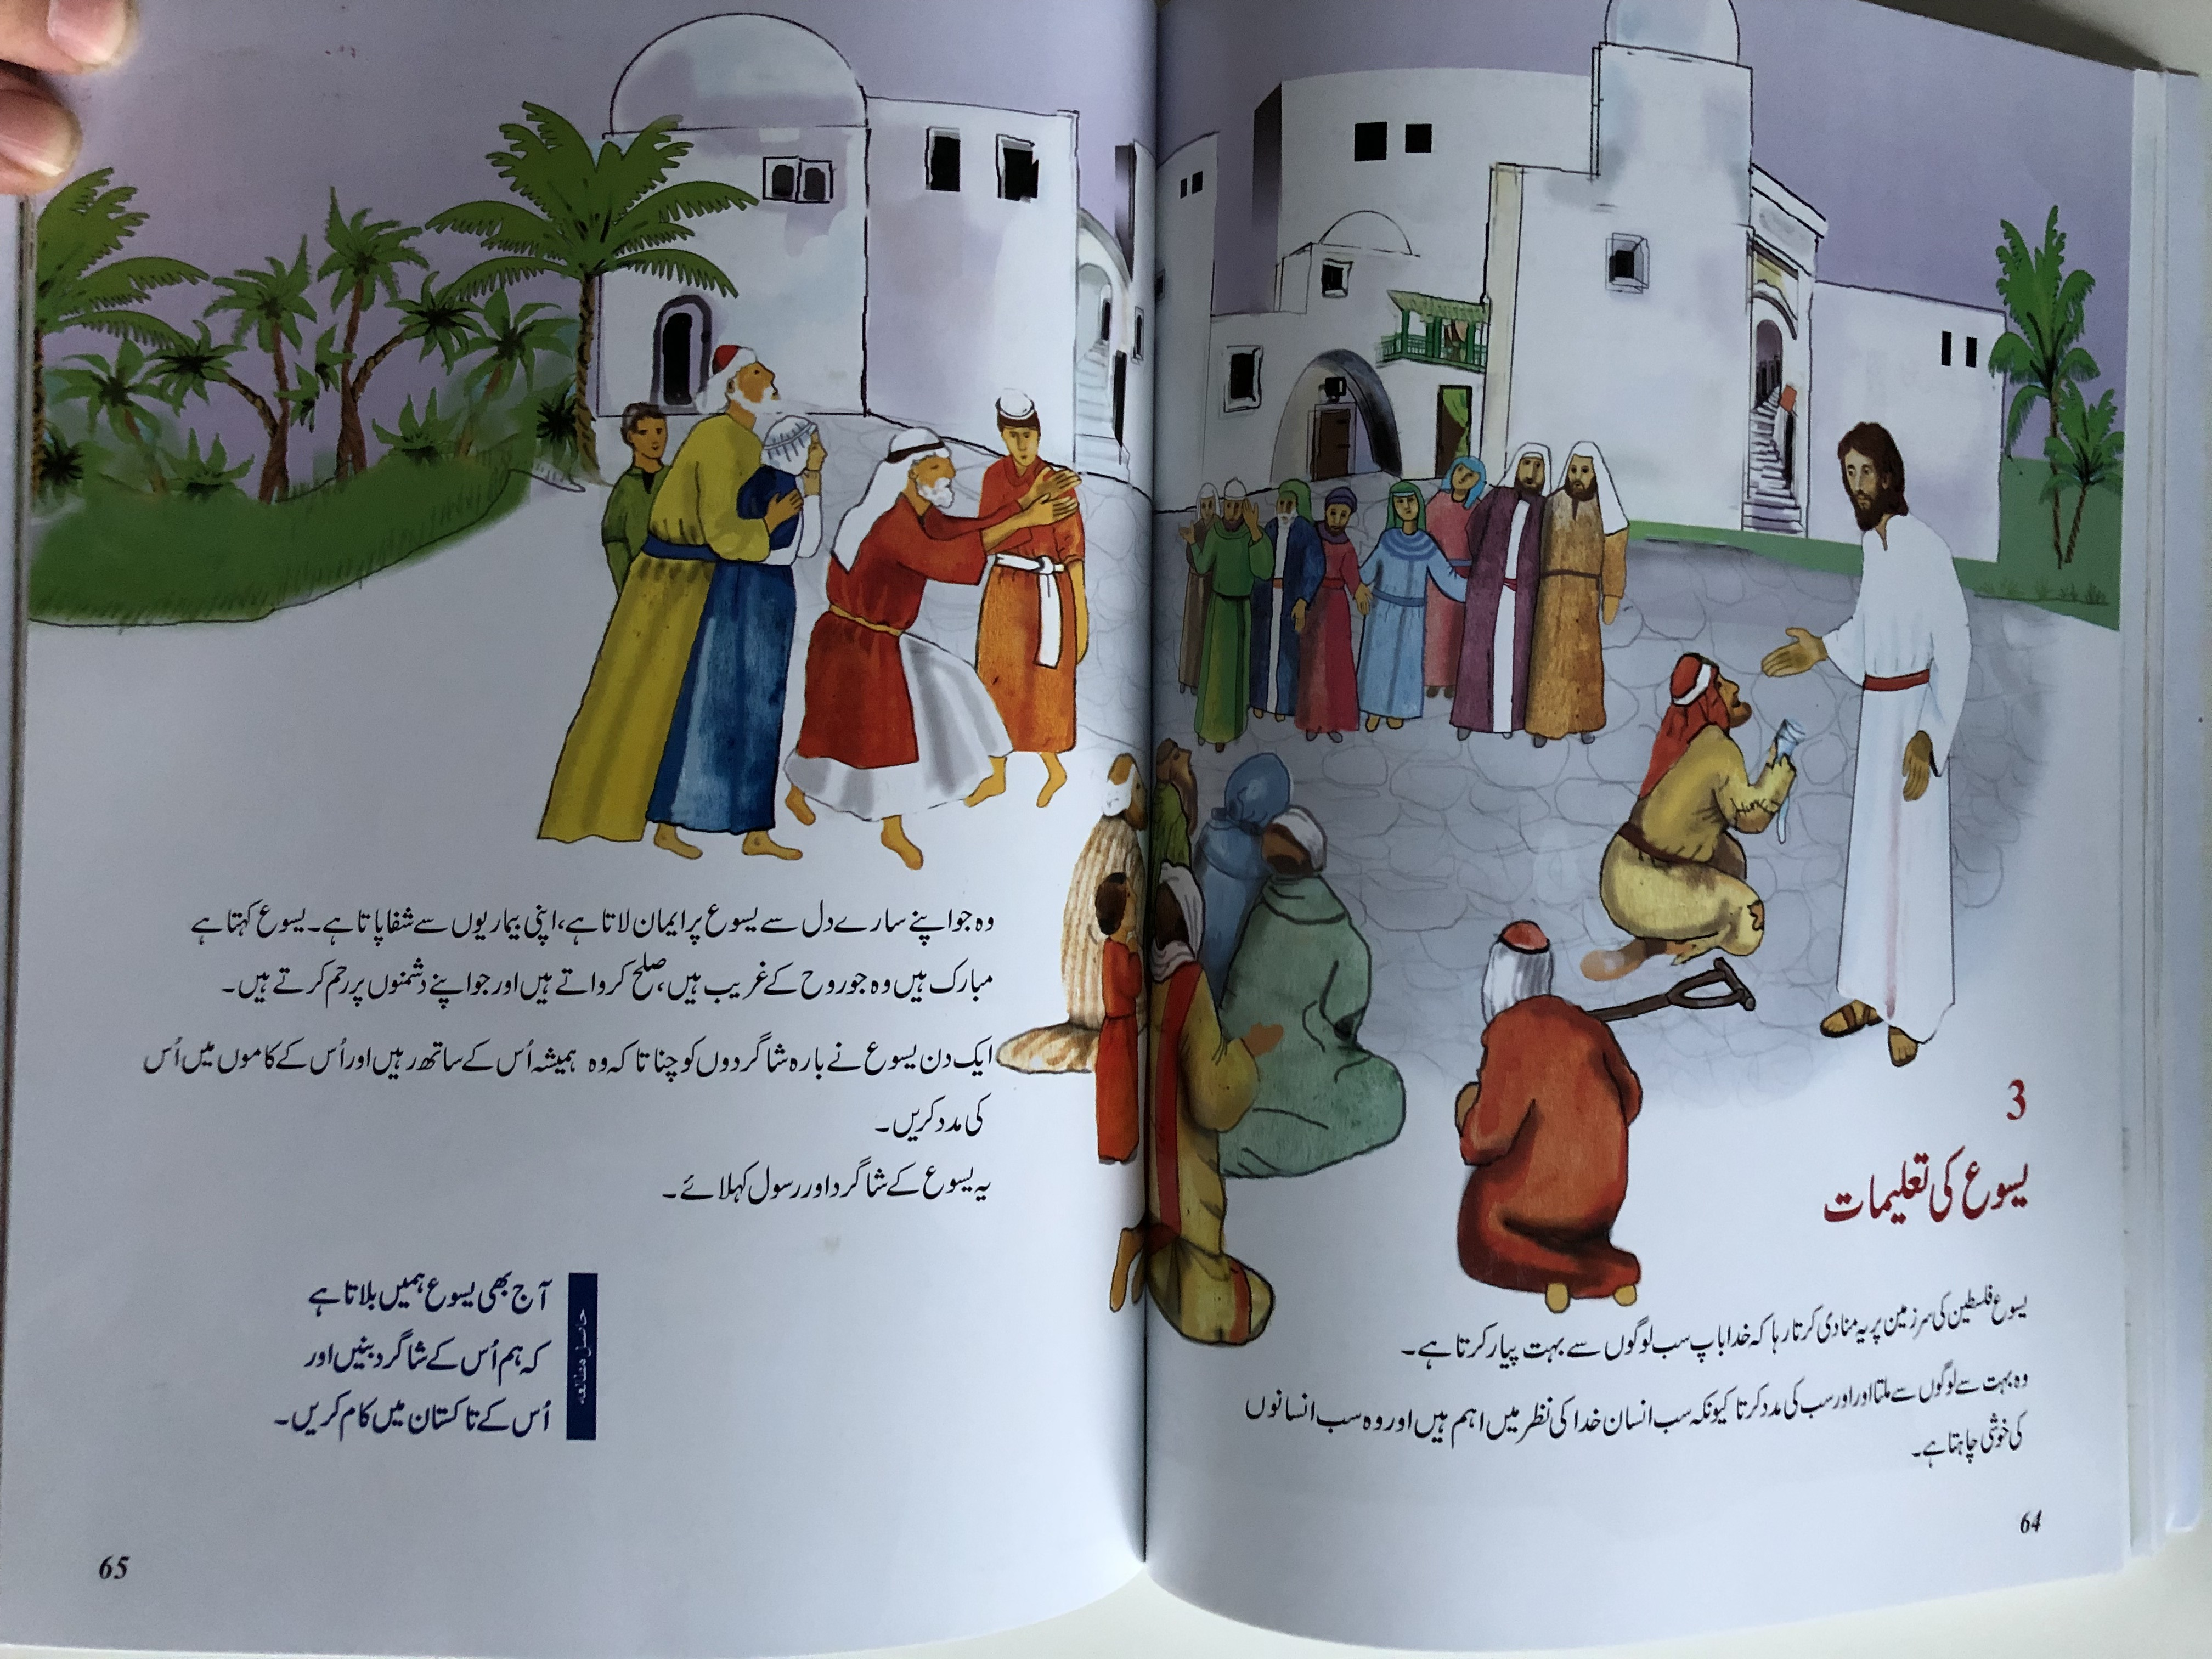 urdu-children-s-picture-bible-st.-paul-communication-centres-pakistan-paperback-2016-color-illustrations-great-gift-for-children-10-.jpg